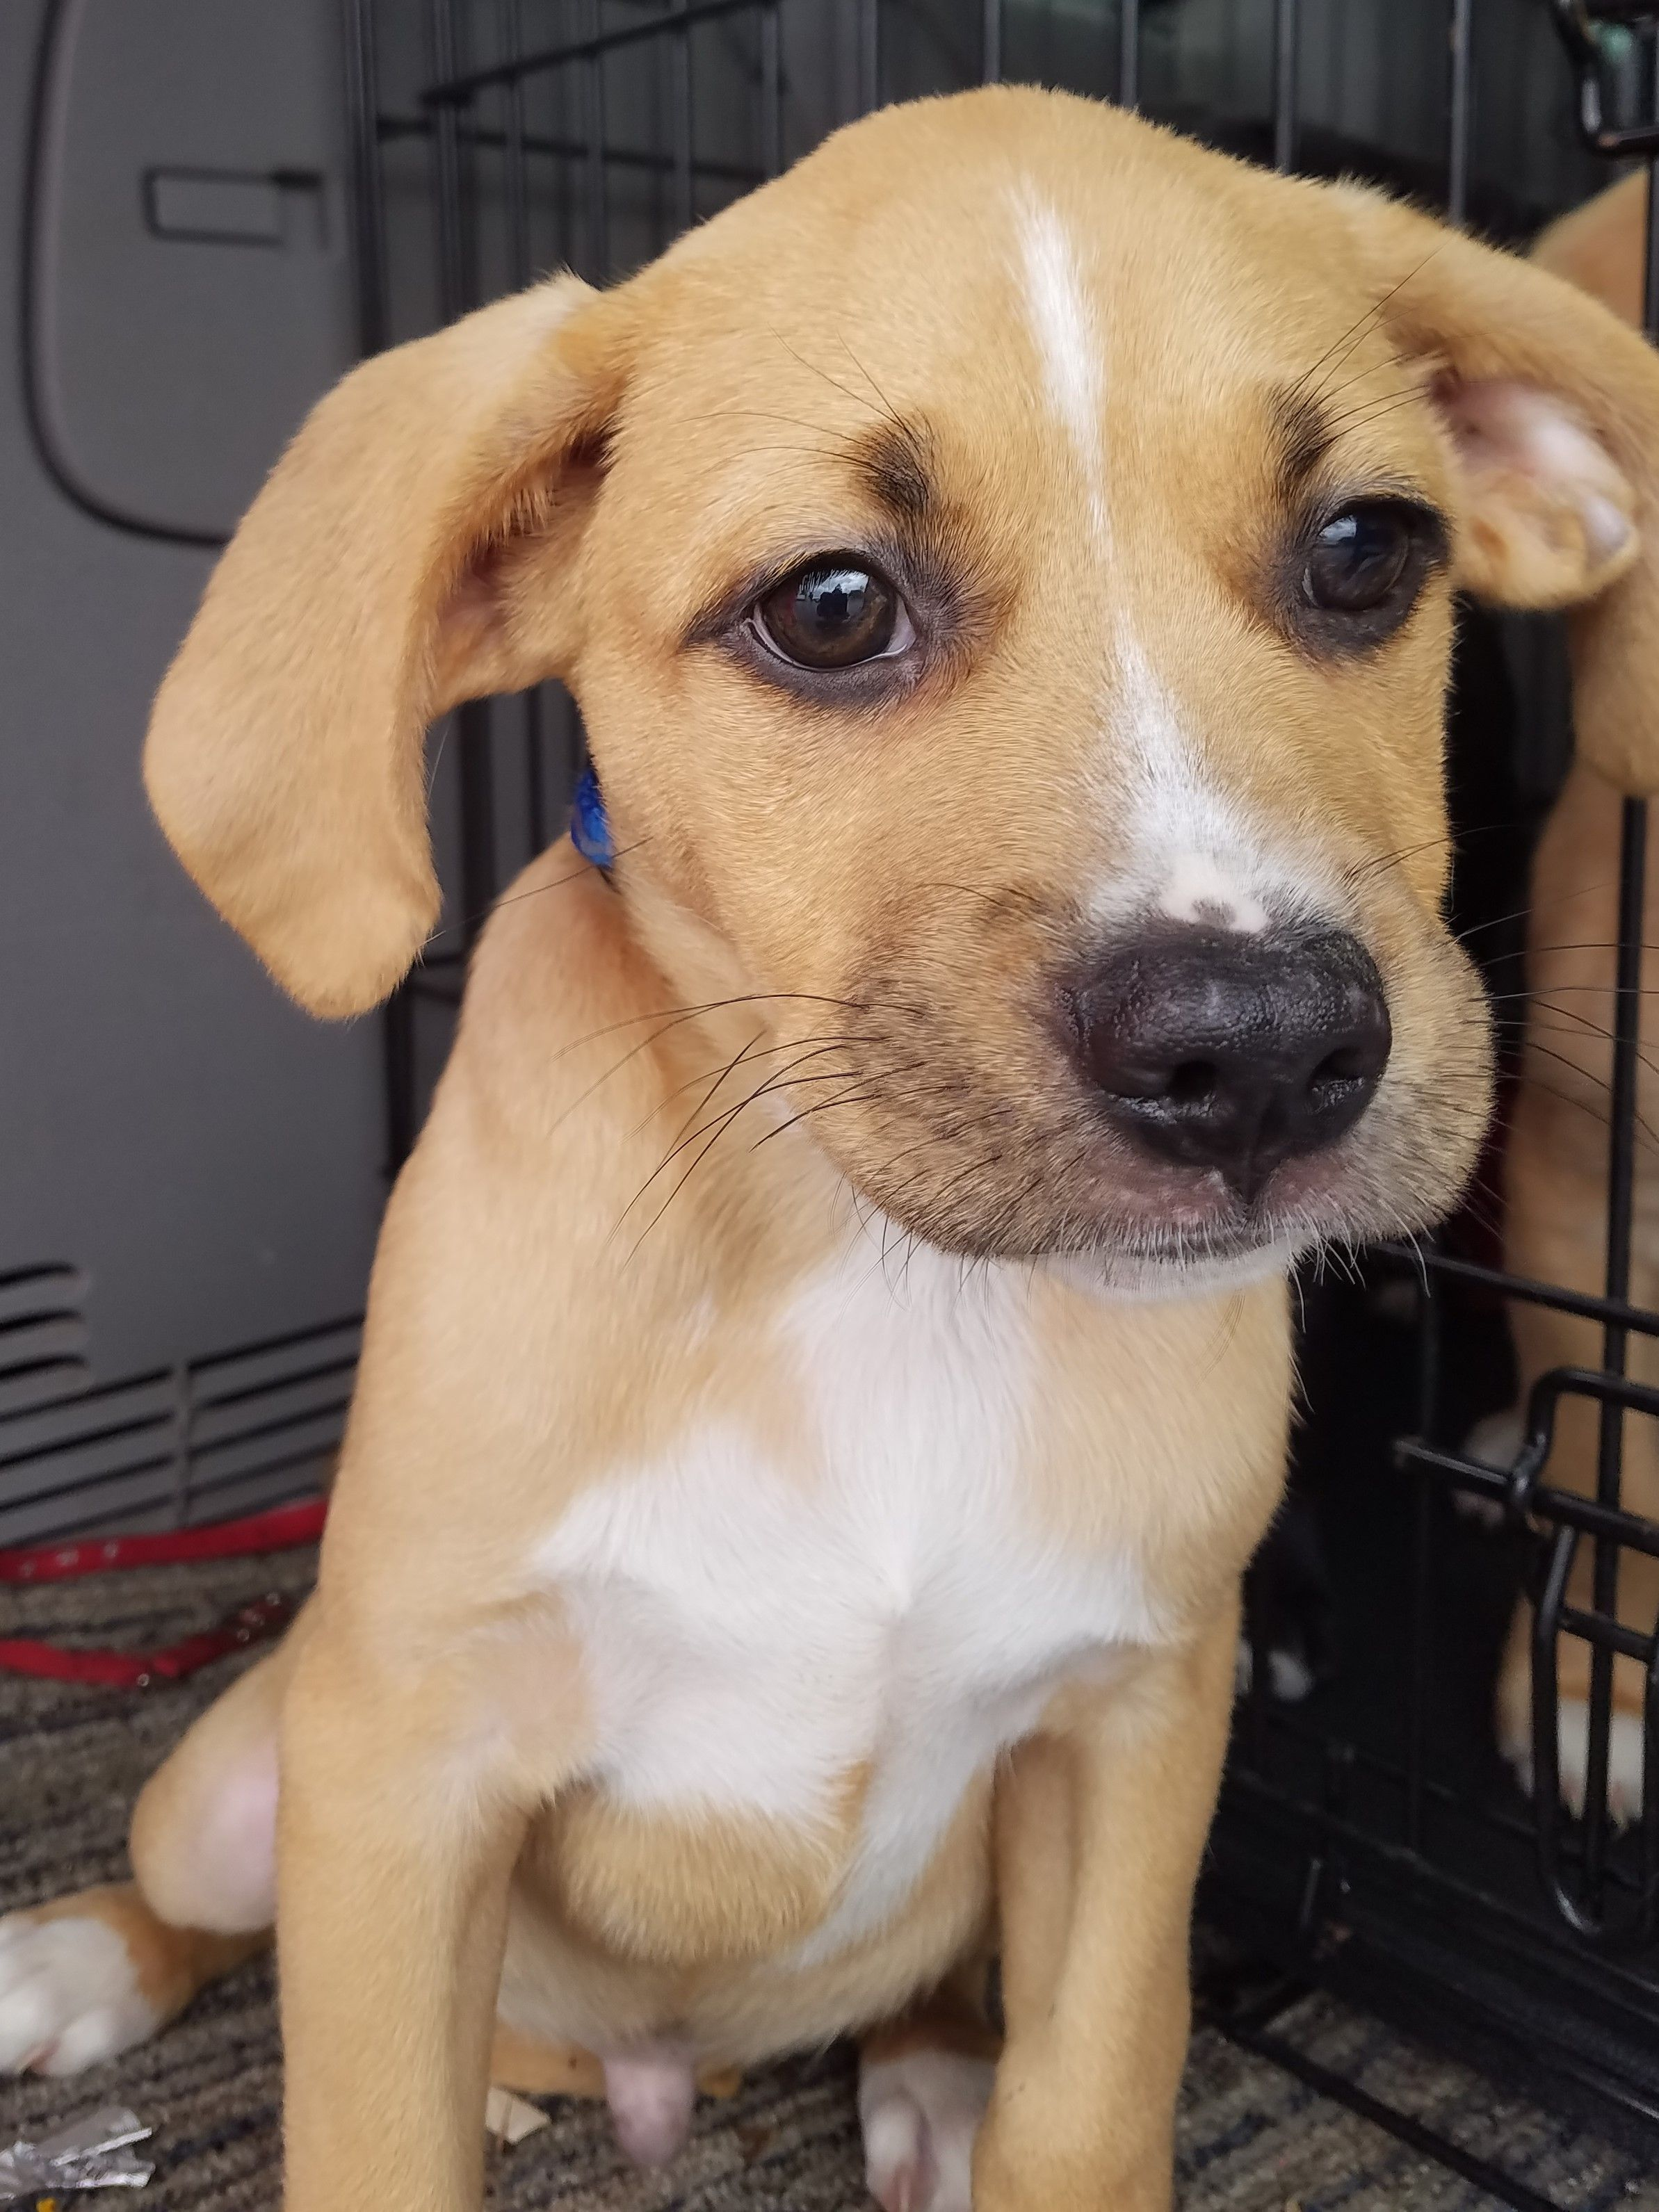 Sheprador dog for Adoption in Nashville, TN. ADN547337 on